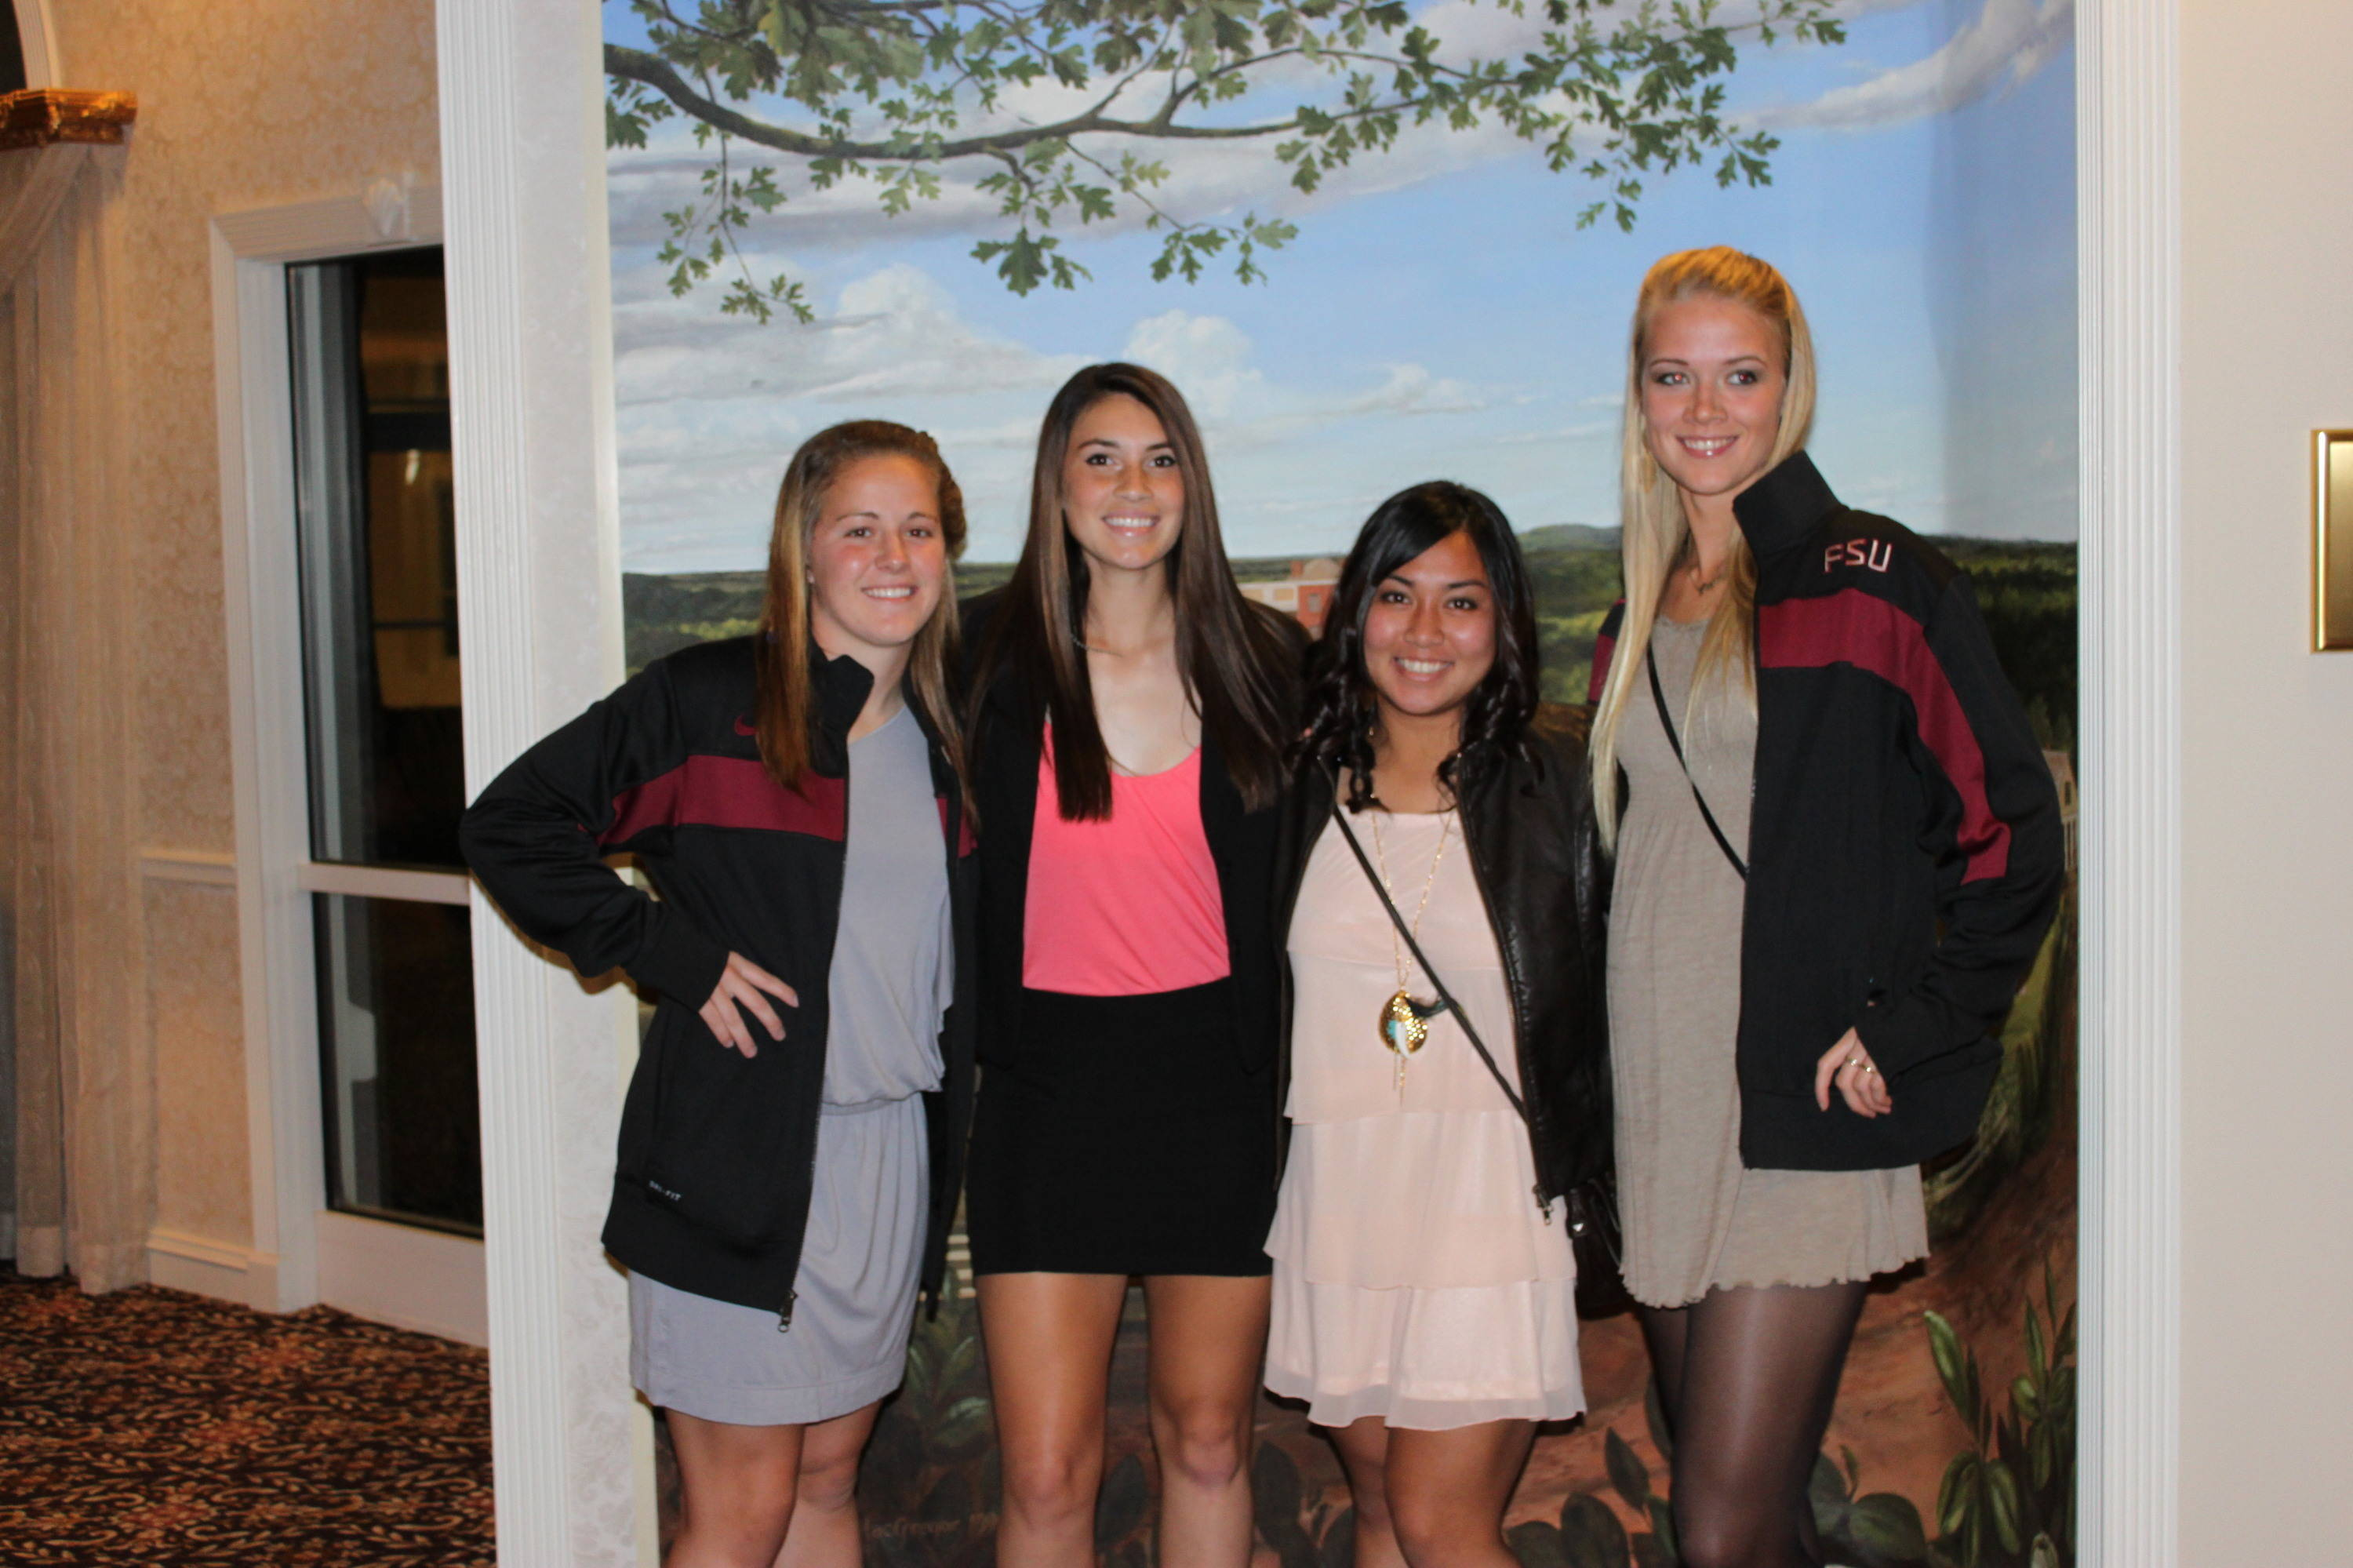 CC Cobb, Tiana Brockway, Hikaru Murakami and Dagny Brynjarsdottir in the hotel in Kennesaw prior to the College Cup banquet